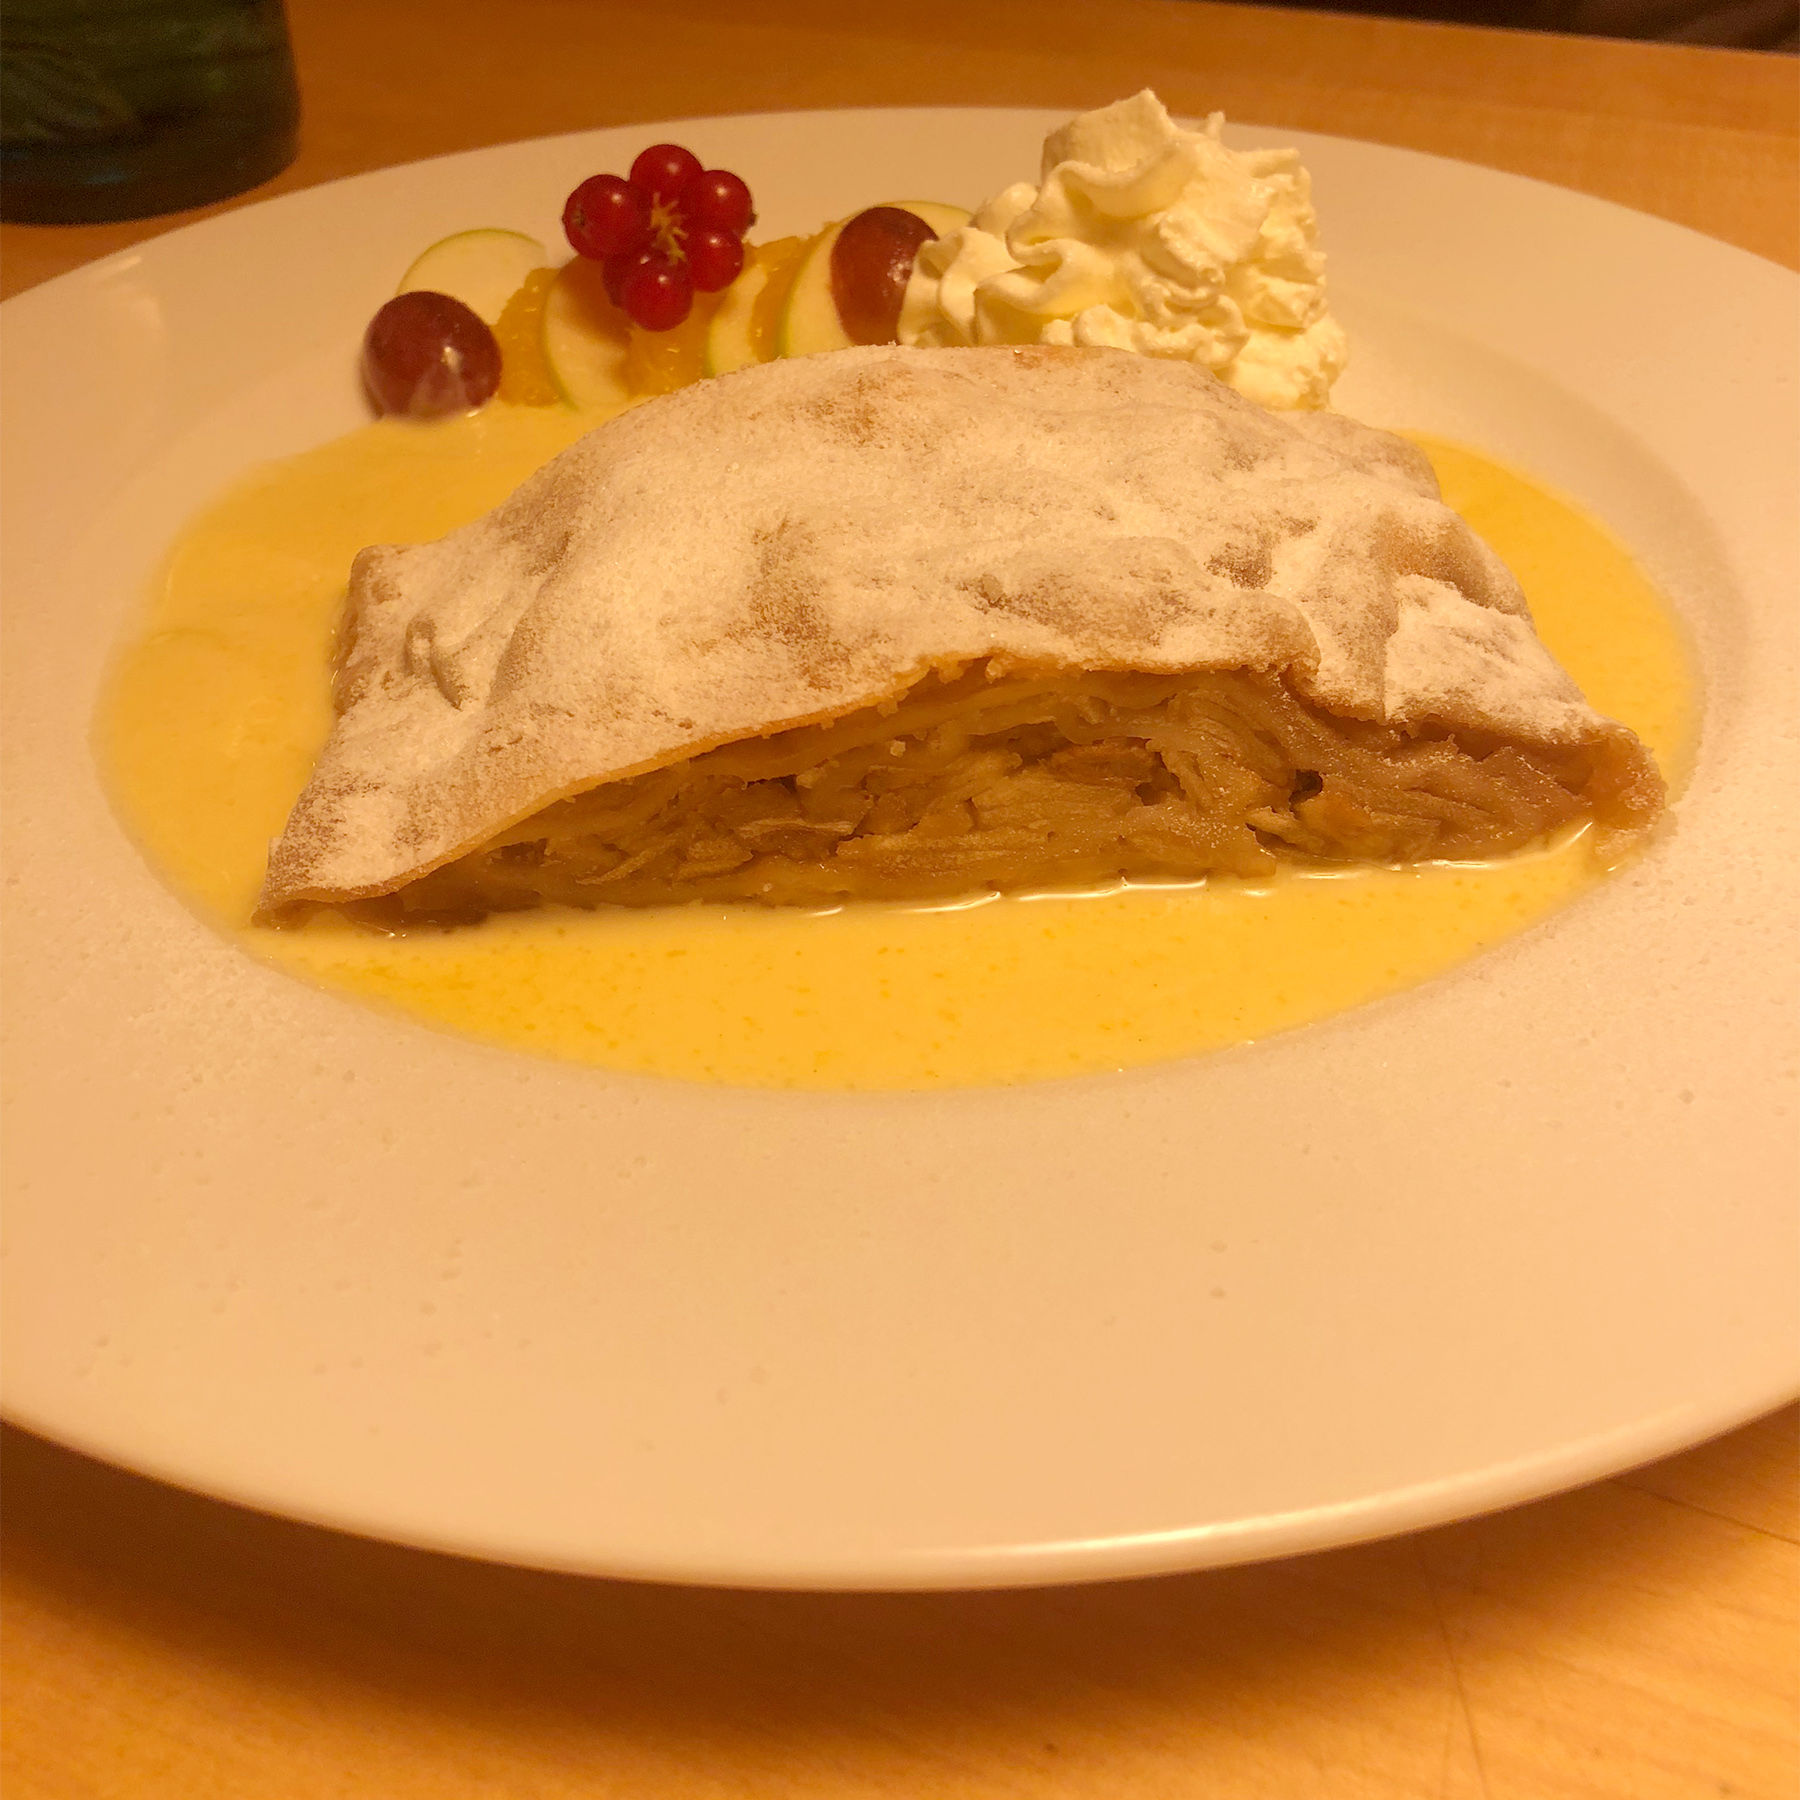 tender and creamy warm apple strudel